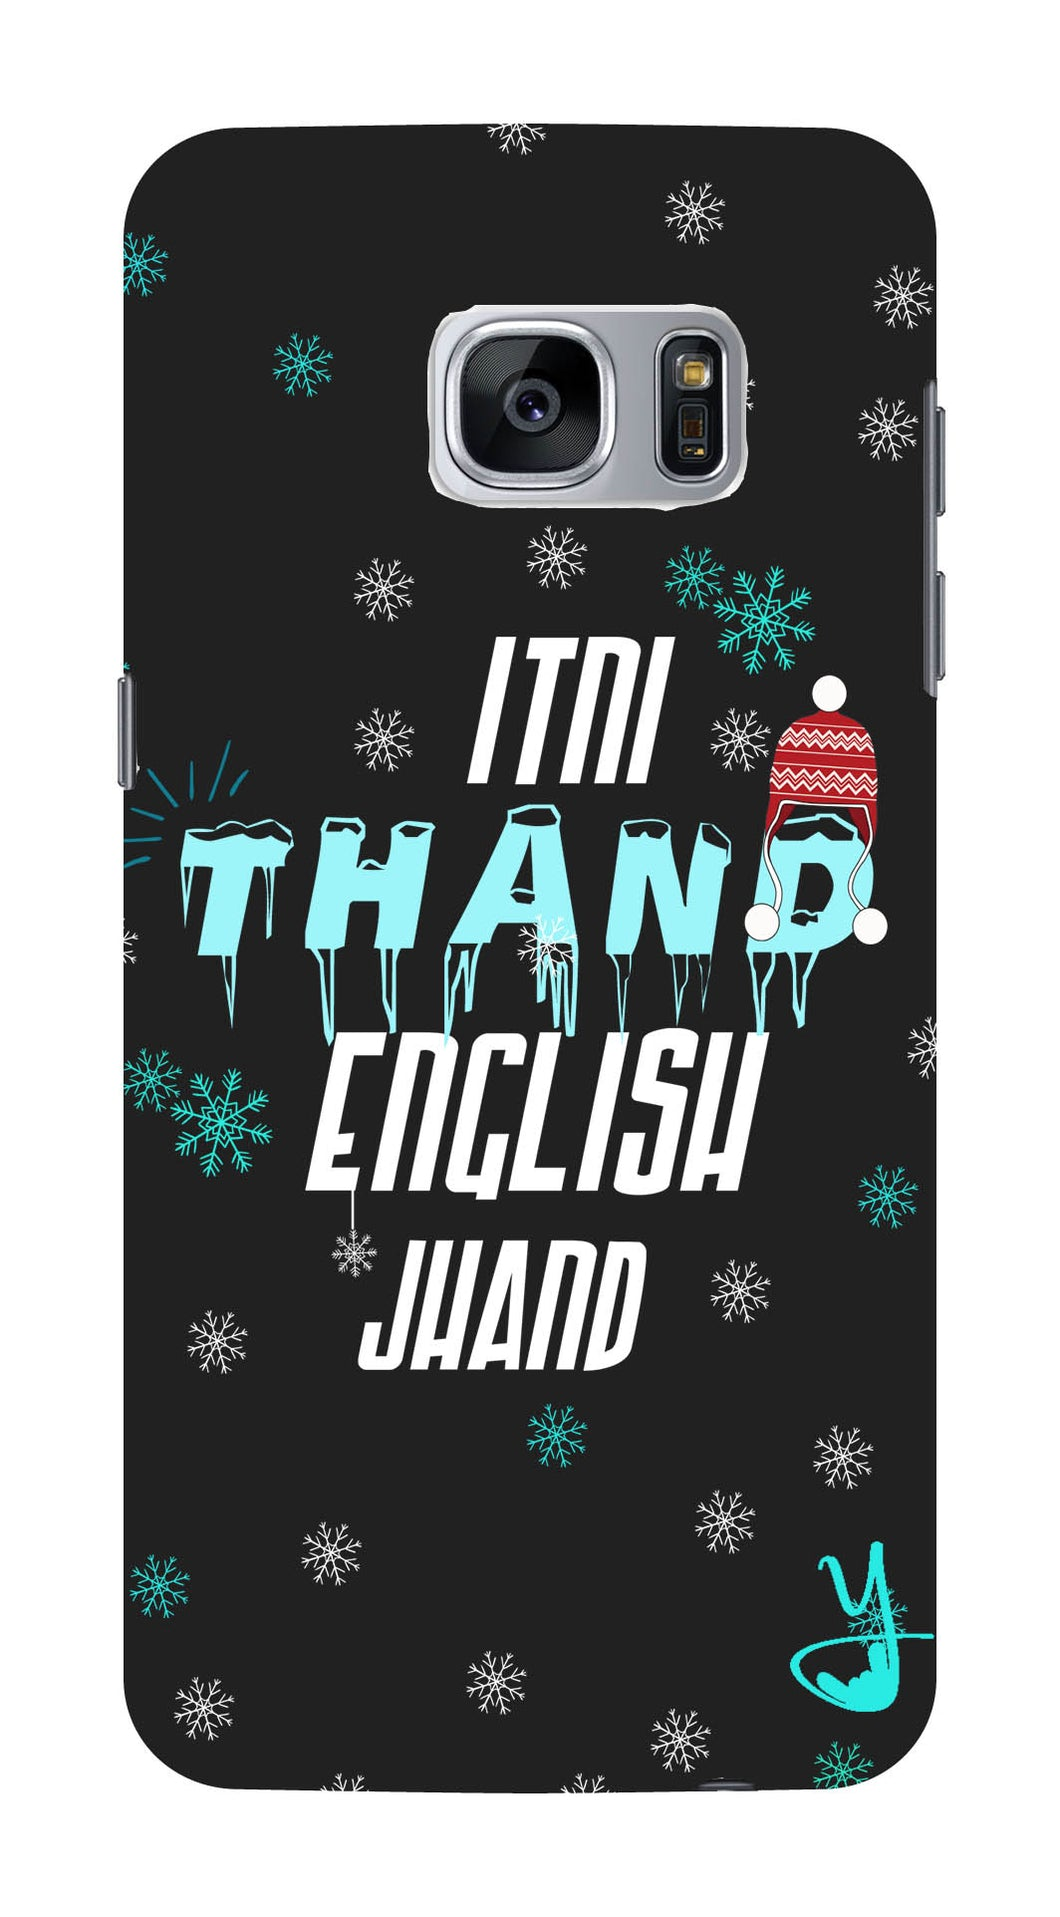 Itni Thand edition for Samsung Galaxy S7 edge